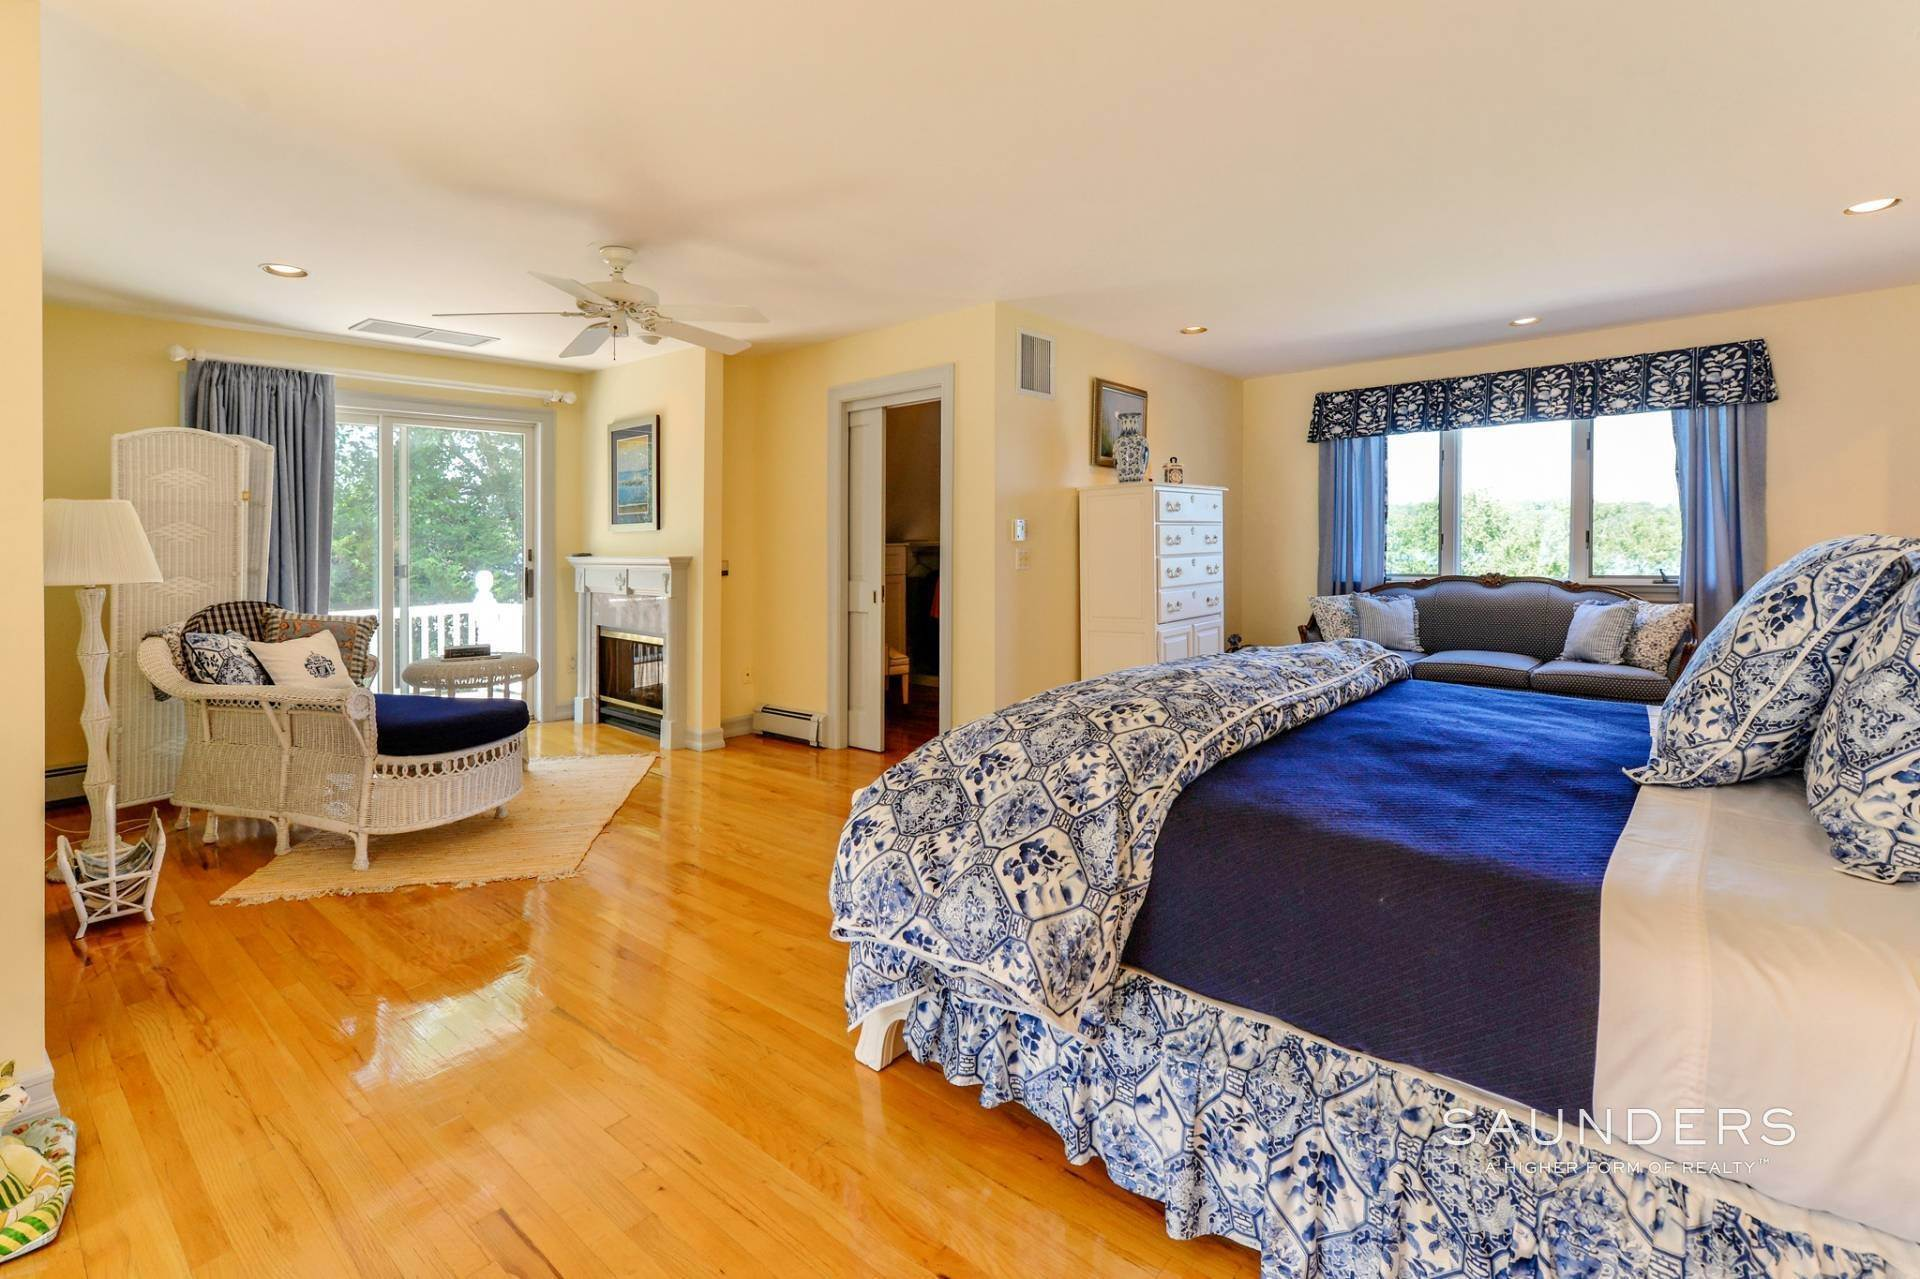 13. Single Family Homes for Sale at Estate Section Compound With Deep Water Dock, Sandy Beach, Pool 58 Westmoreland Drive, Shelter Island Heights, Shelter Island, NY 11964